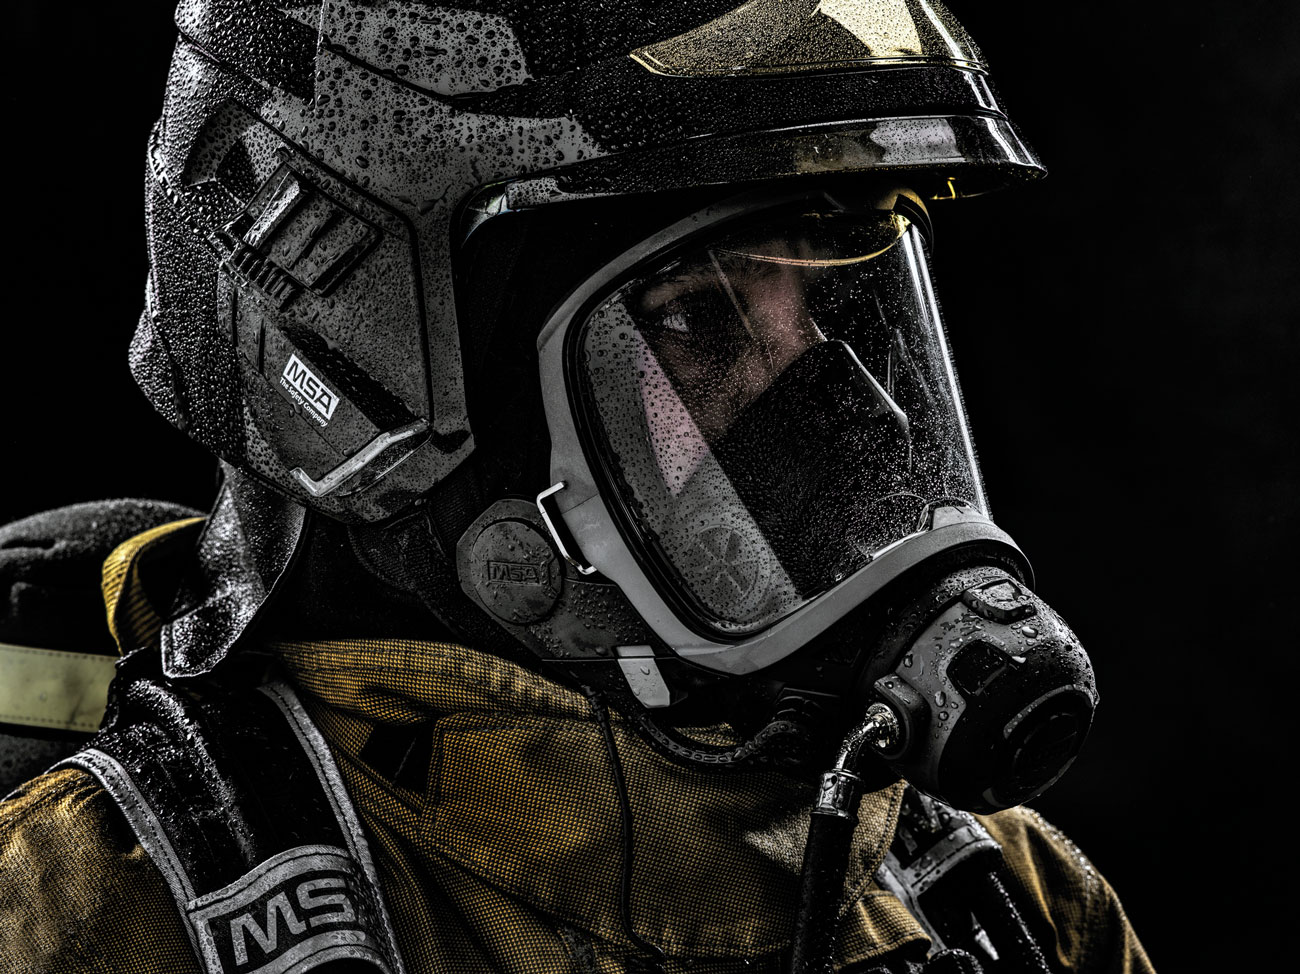 MSA G1 Mask with C1 Headset – part of the future-proofed M1 SCBA solution.